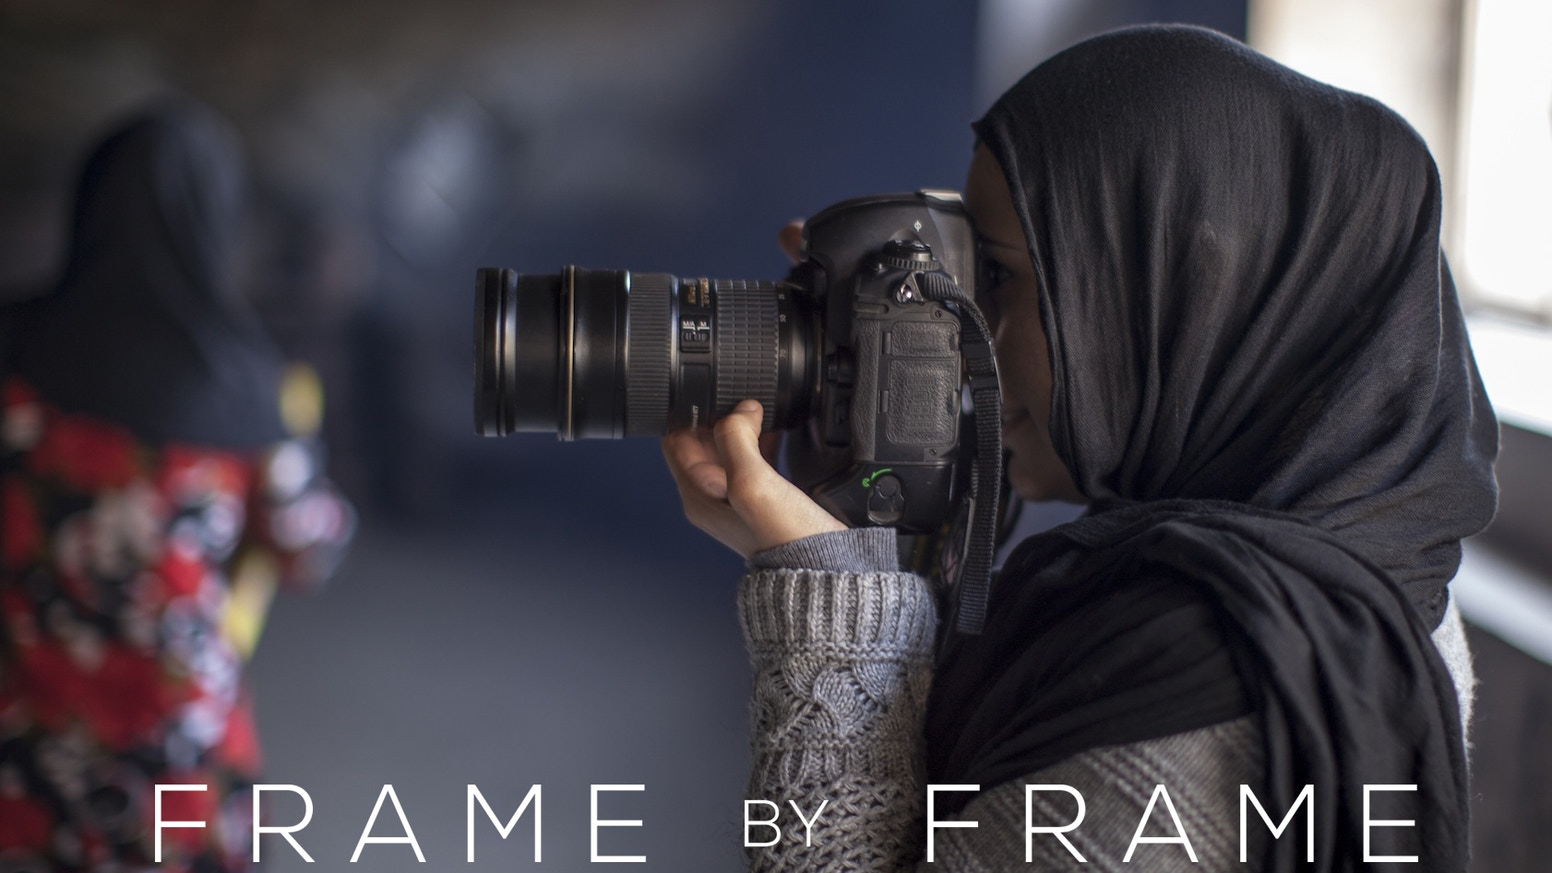 A documentary exploring Afghanistan's recent revolution of photography through four local photojournalists.